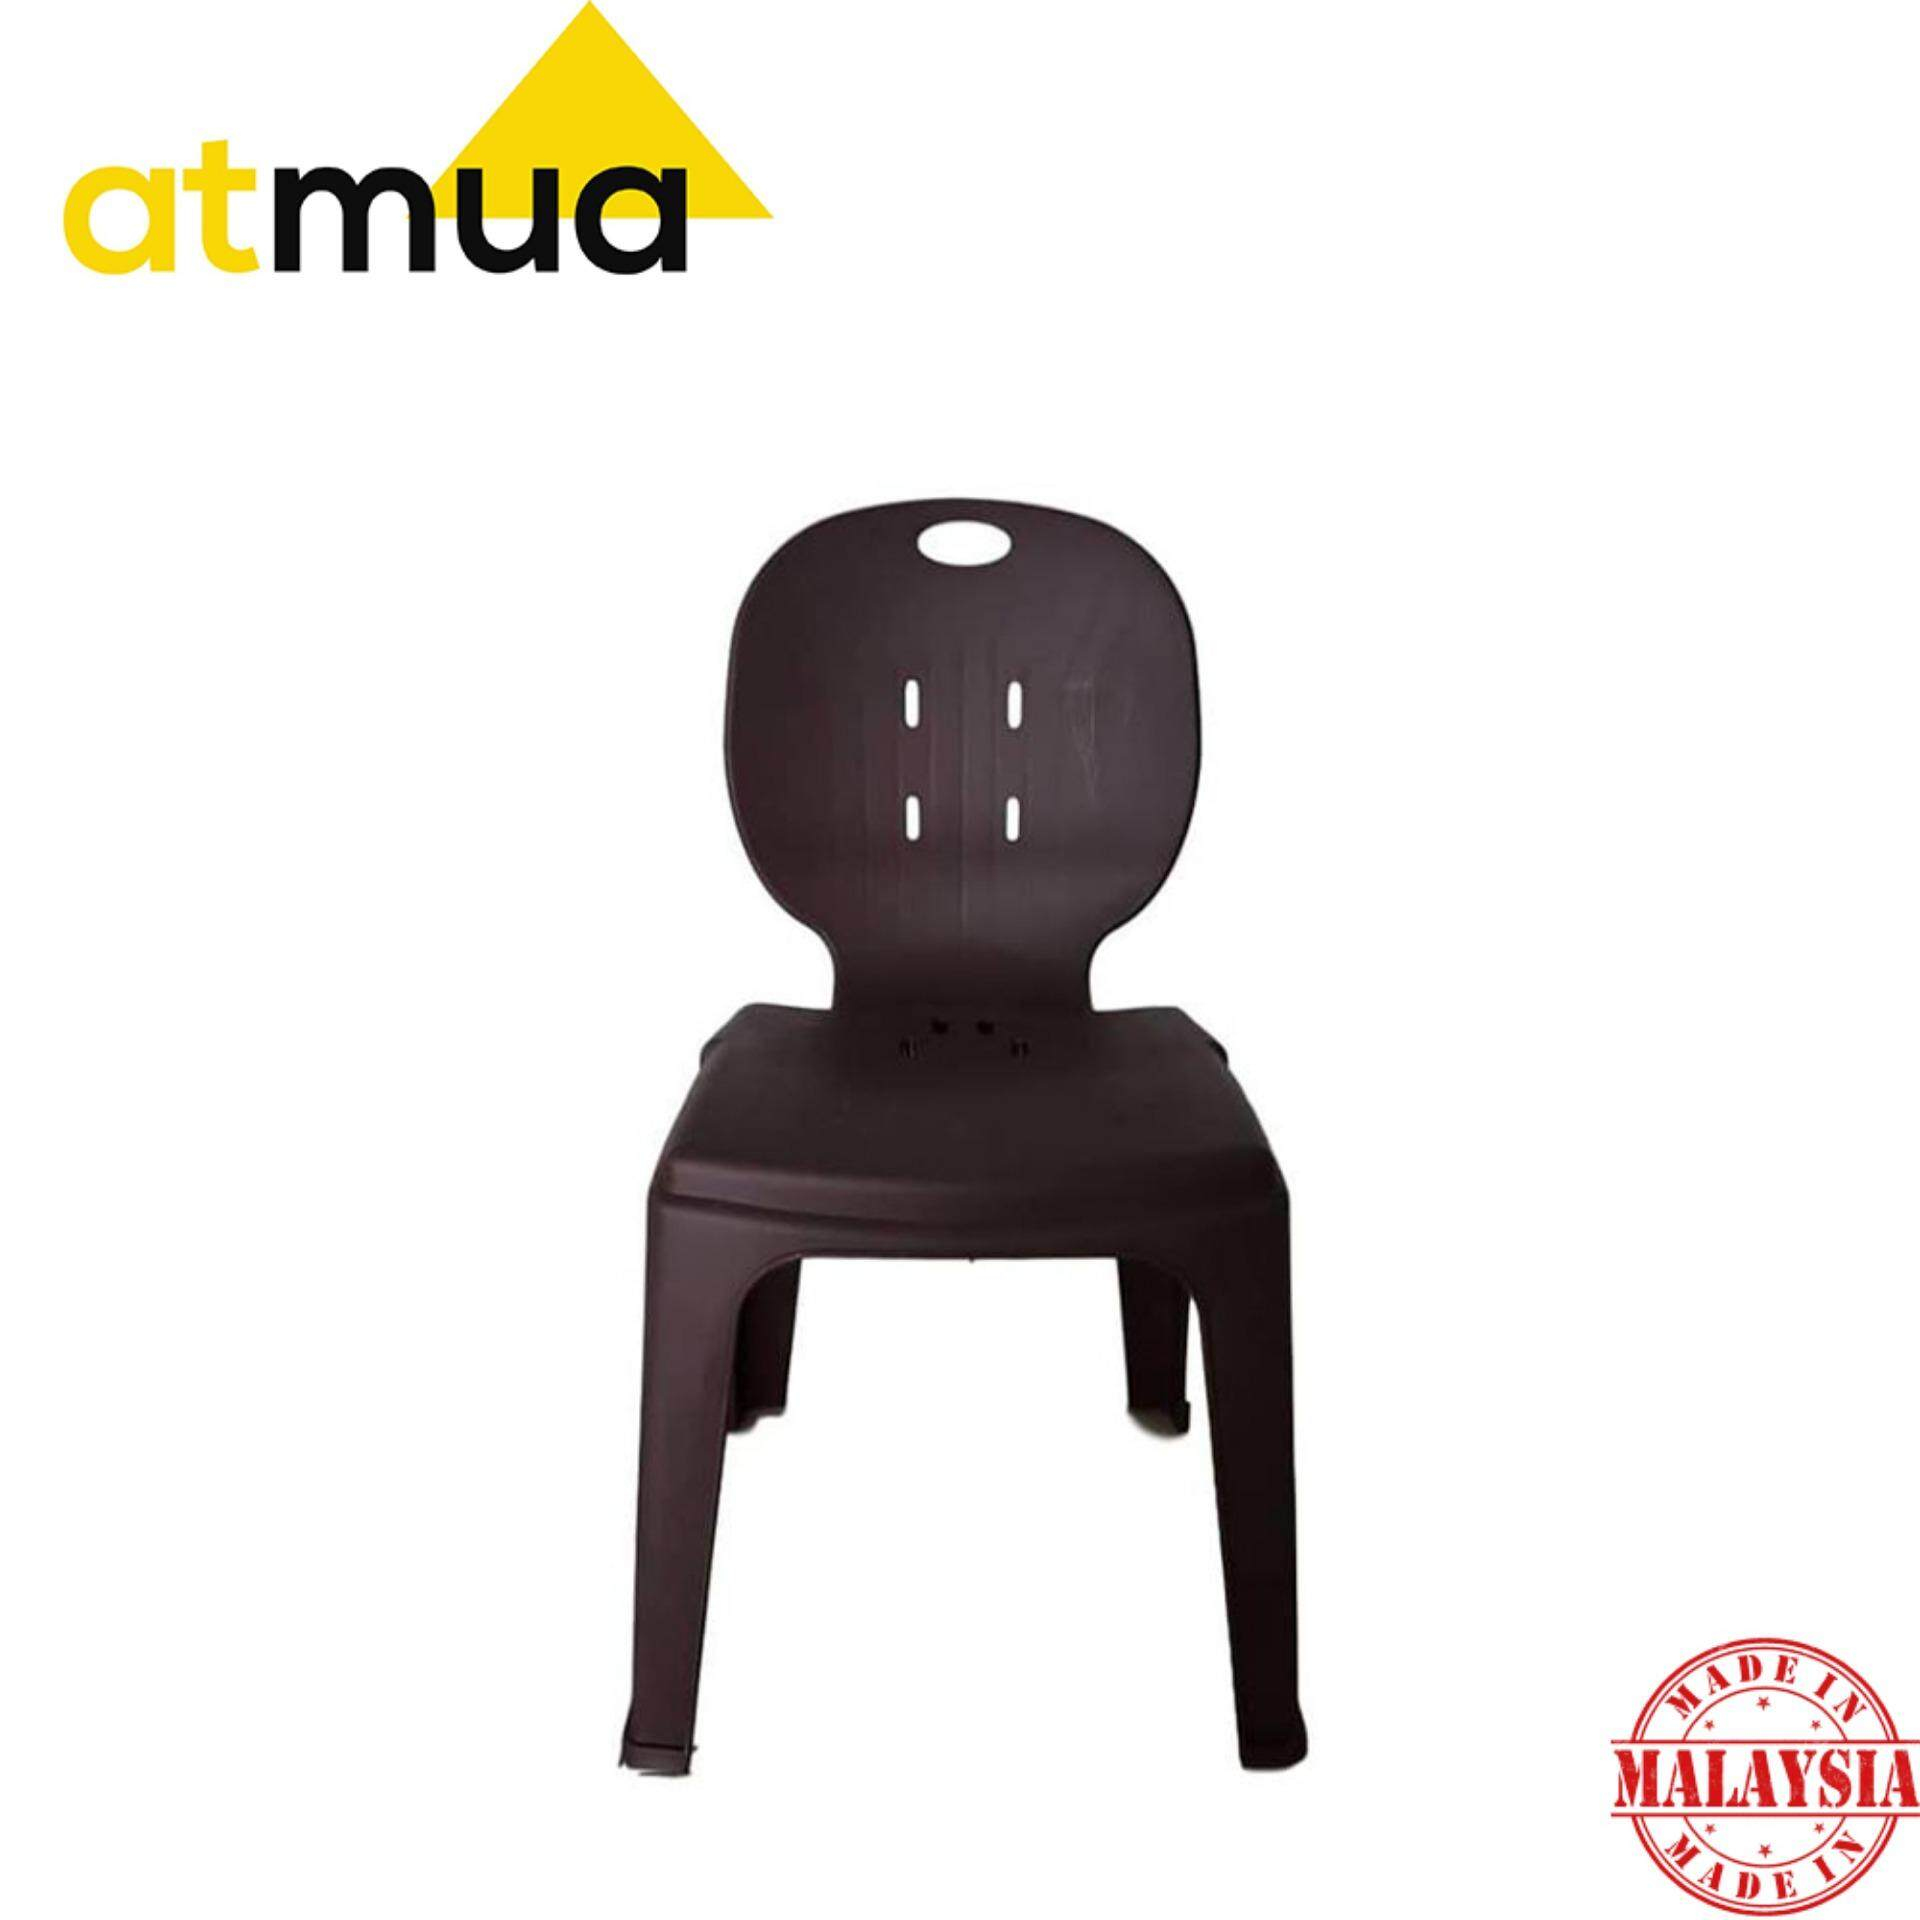 [5 Unit] Atmua Wang Plastic Chair Restaurant / Cafe Chair / Mamak *Strong and Durable* [150kg Capacity